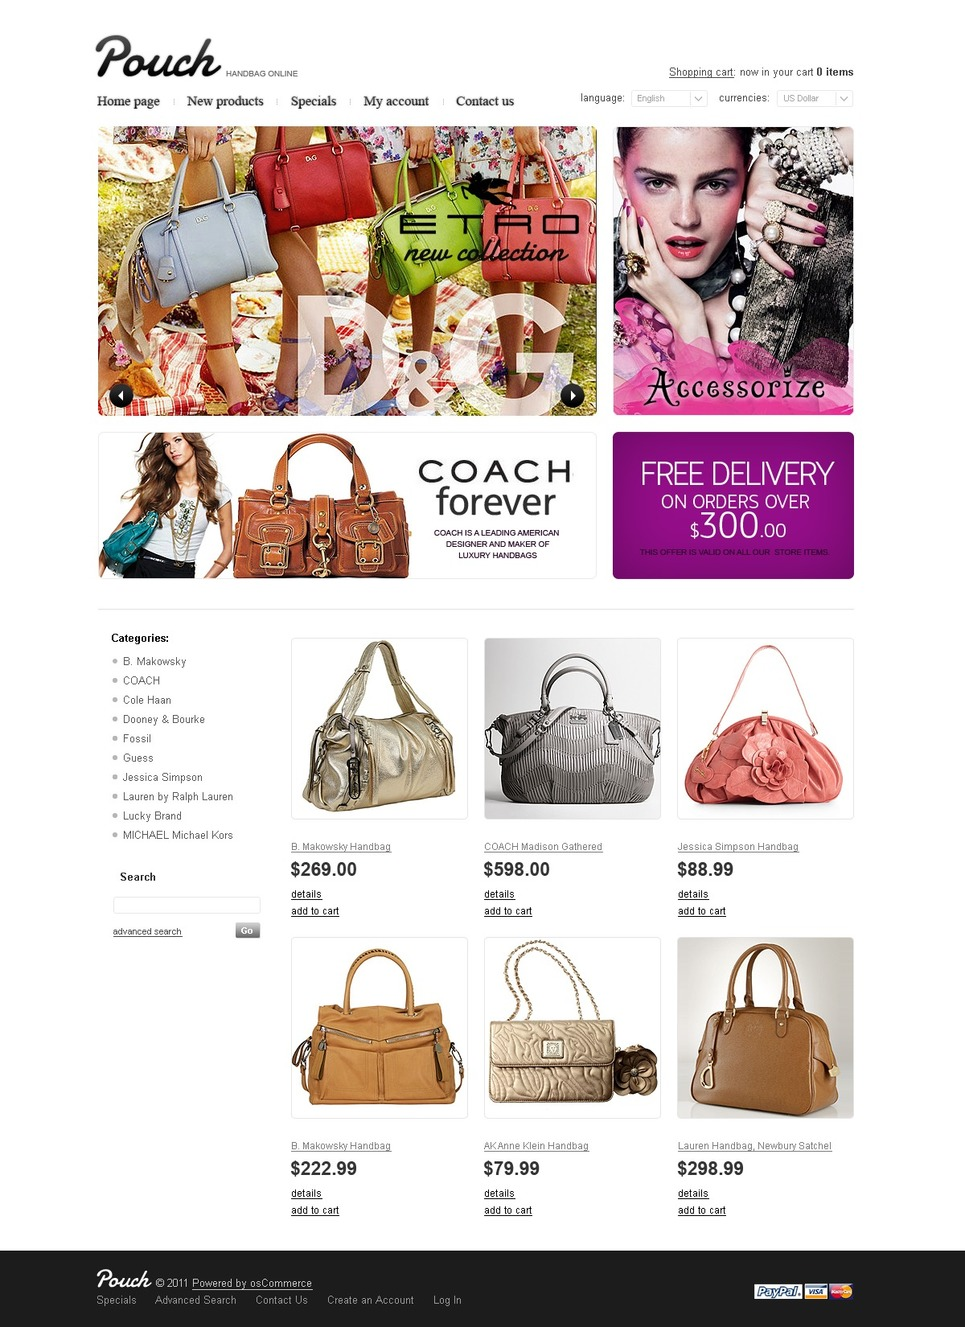 The Very Girly Pouch OsCommerce Theme